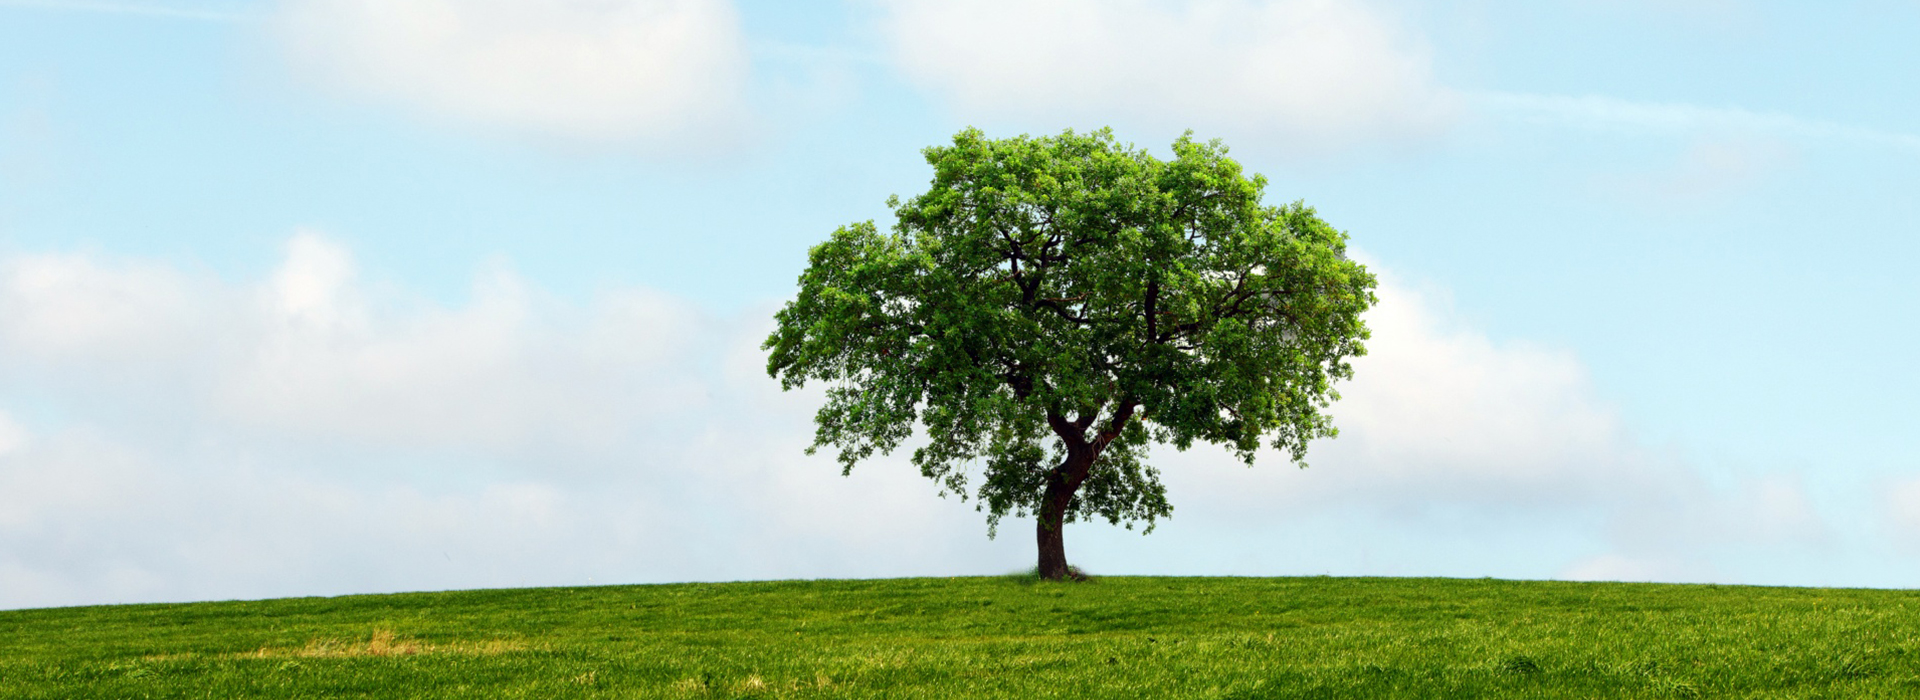 Plant a tree to offset your carbon footprint